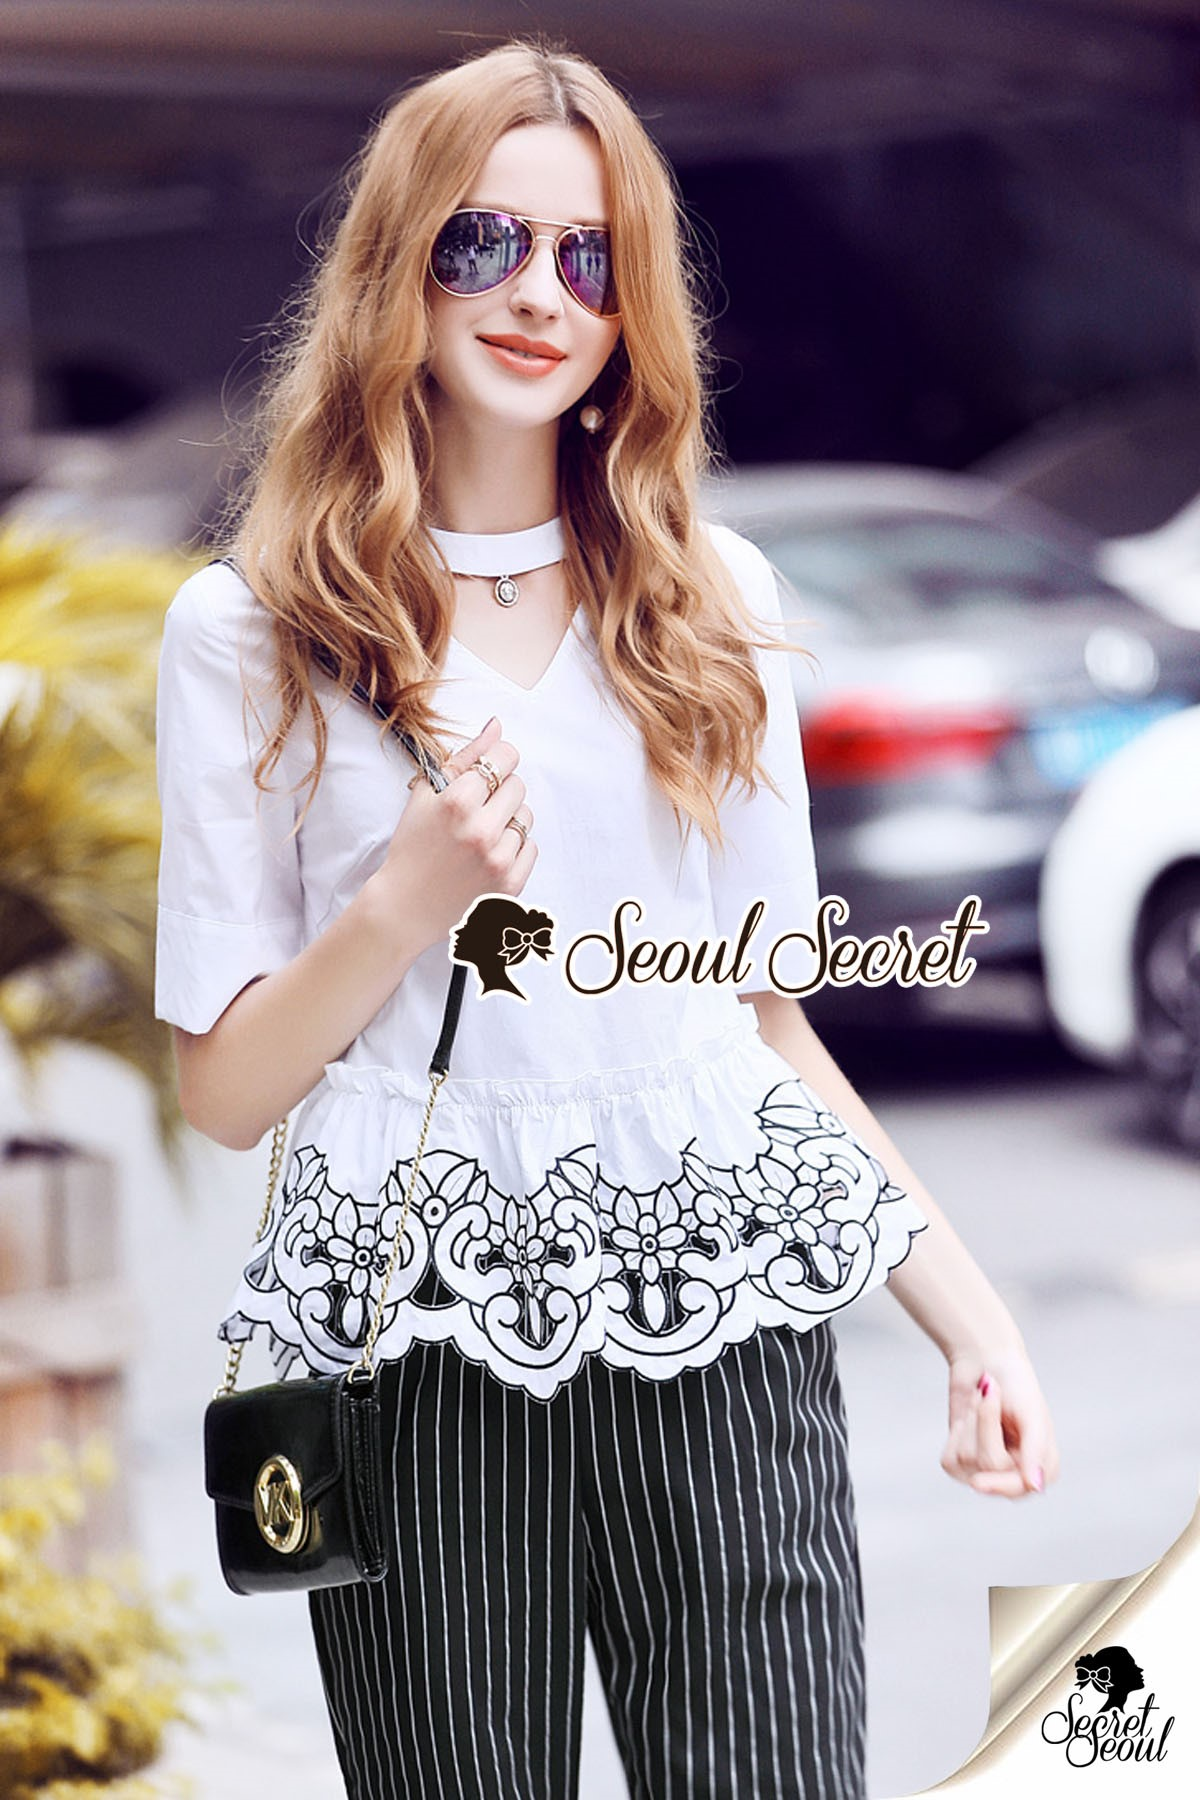 Seoul Secret Say's... Lovely Butterfly Organdy Shirt